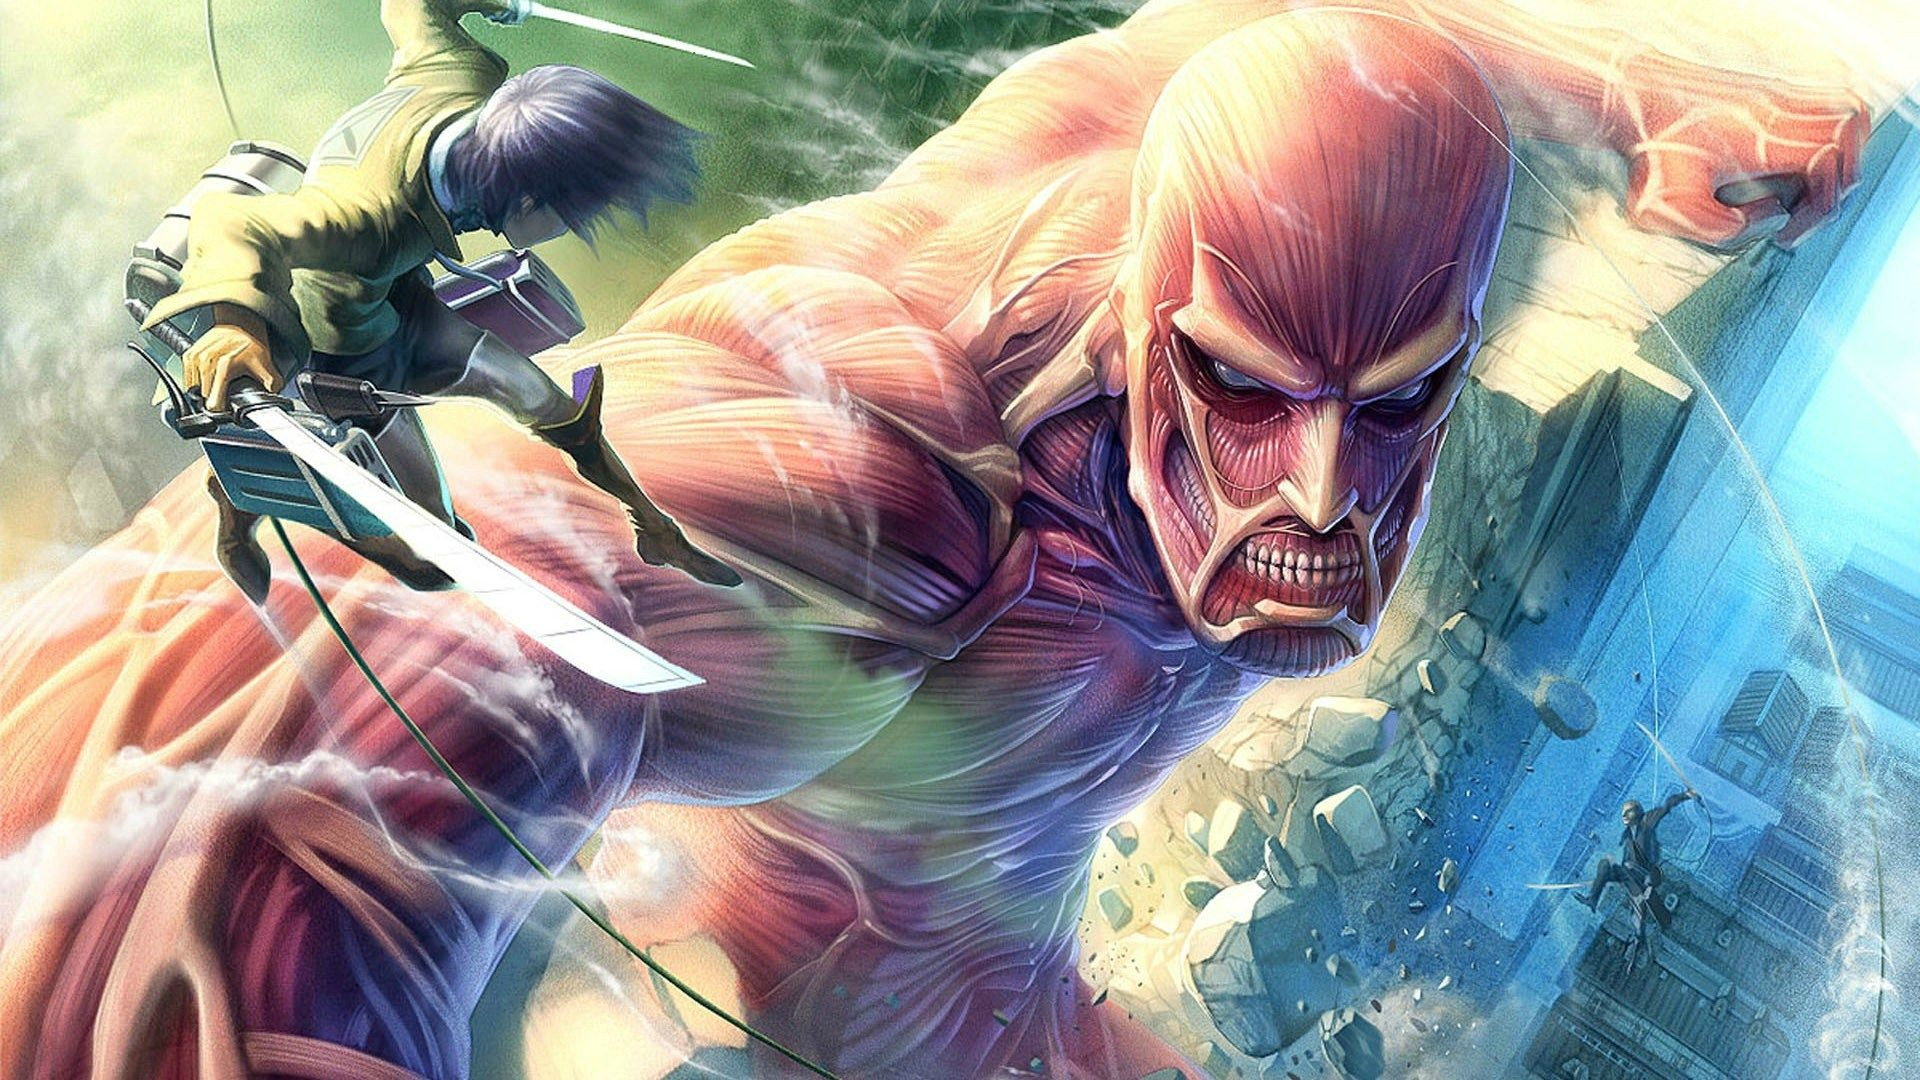 1579839 Backgrounds High Resolution Attack On Titan Wallpaper